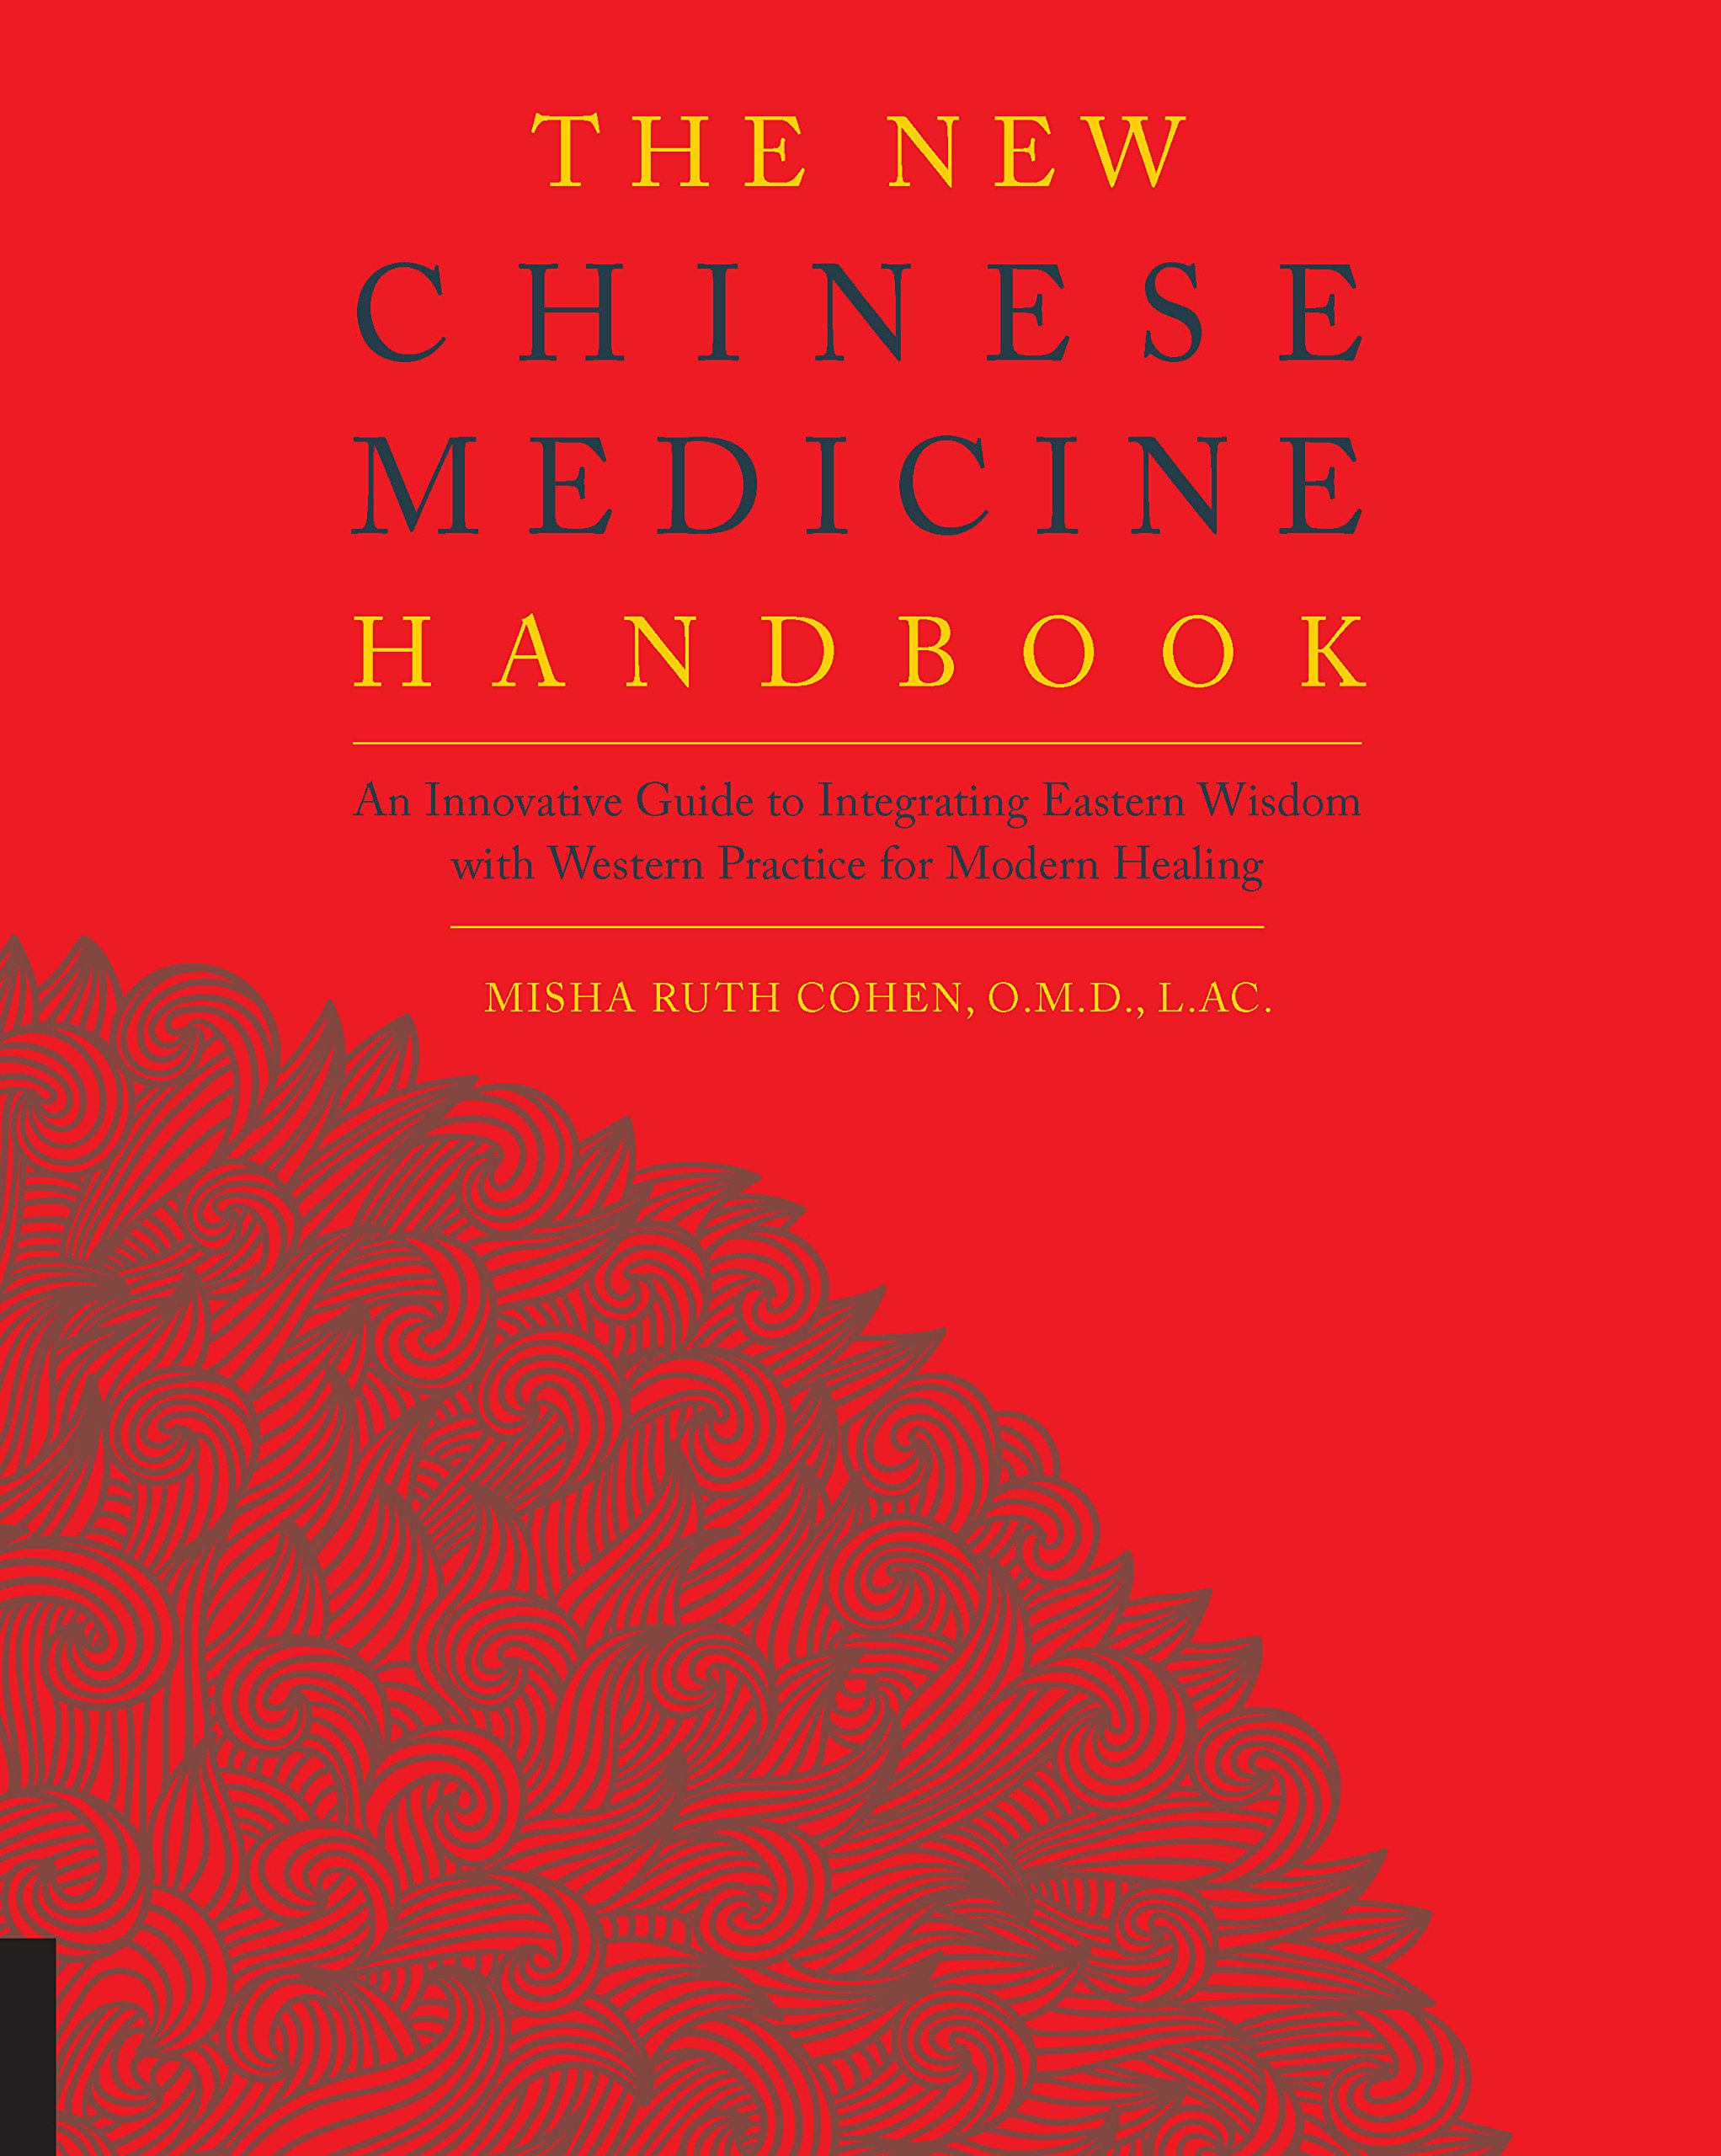 The New Chinese Medicine Handbook: An Innovative Guide to Integrating Eastern Wisdom with Western Practice for Modern Healing PDF